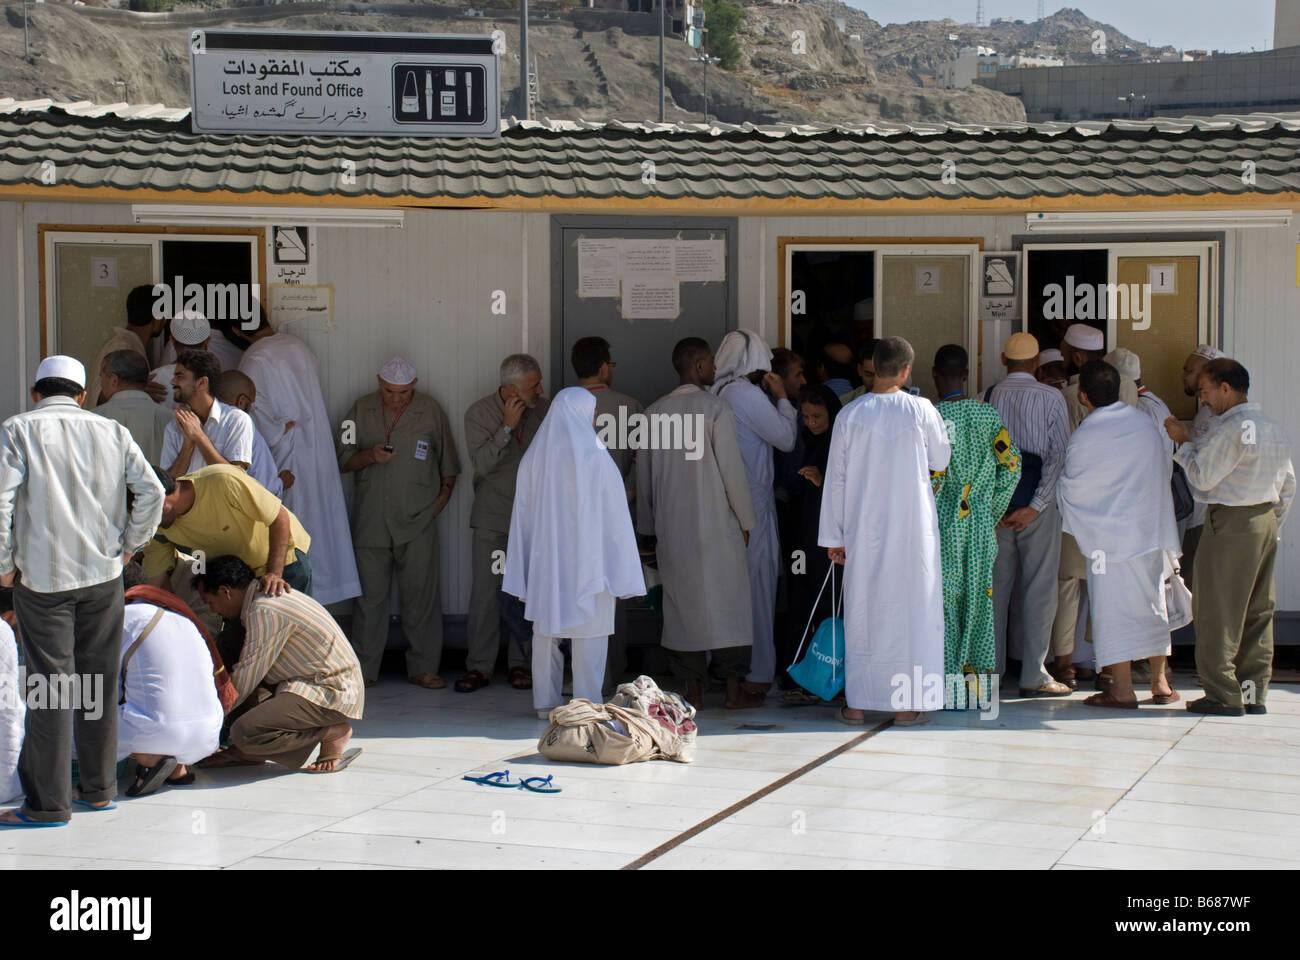 Pilgrims lining up near Masjid al Haram trying to access the